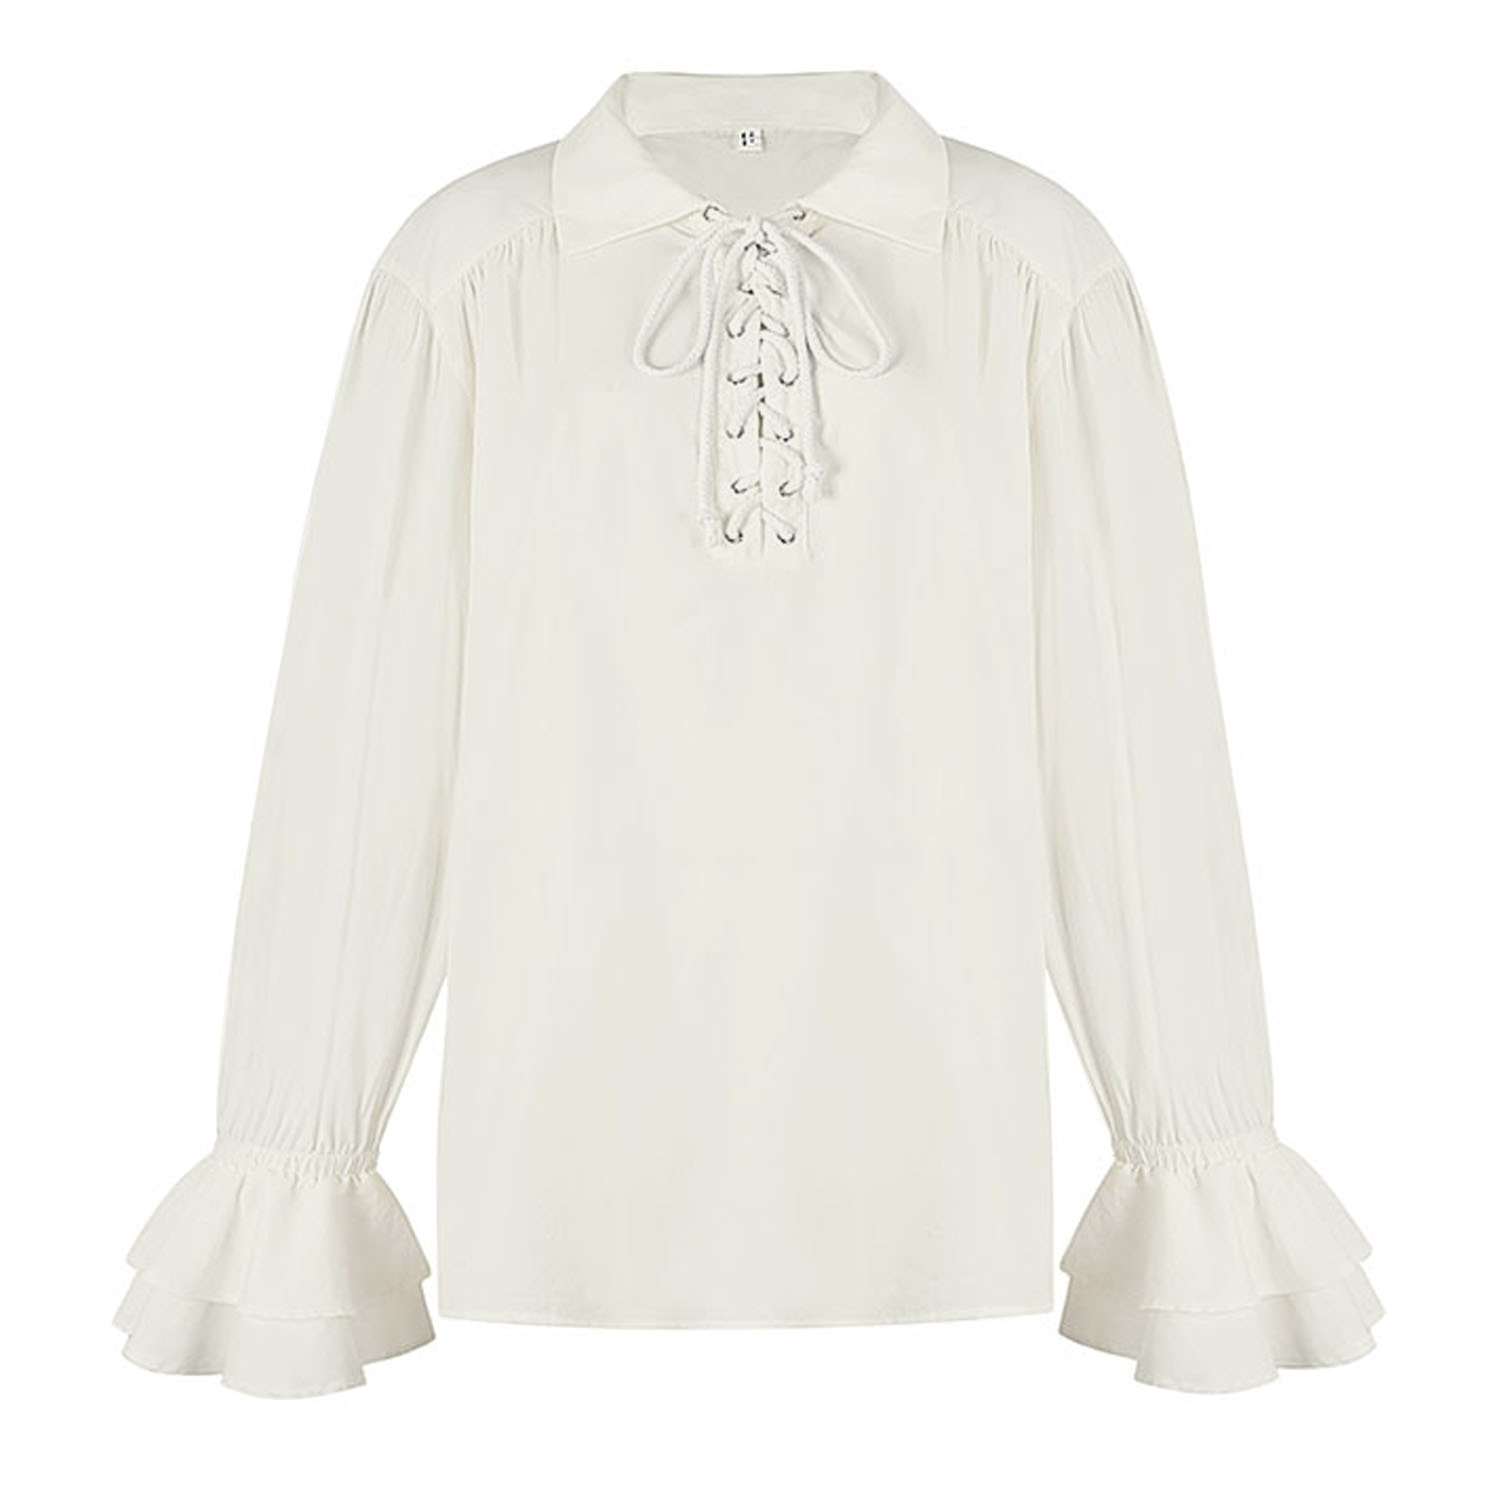 Men's Fashion White Lapel Lace Up Ruffle Flared Long Sleeve Pirate Shirt Blouse Tops N20548